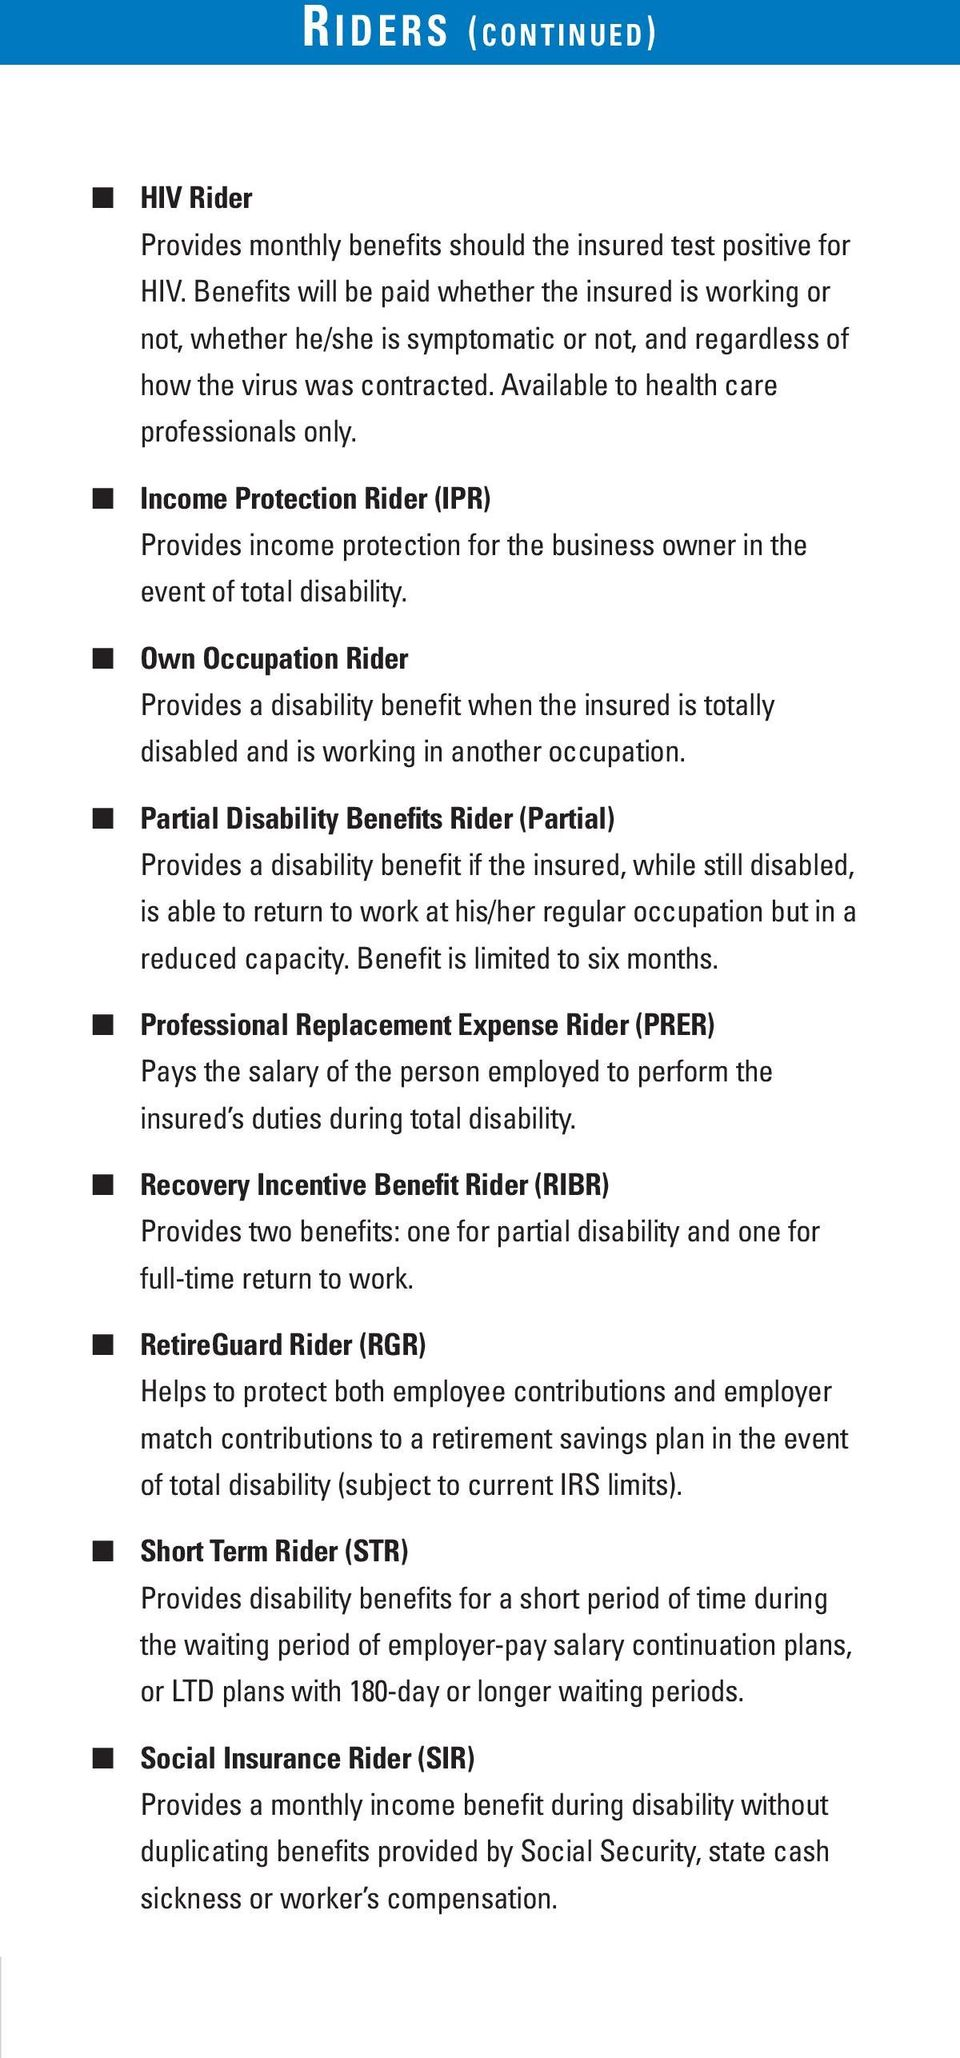 Income Protection Rider (IPR) Provides income protection for the business owner in the event of total disability.